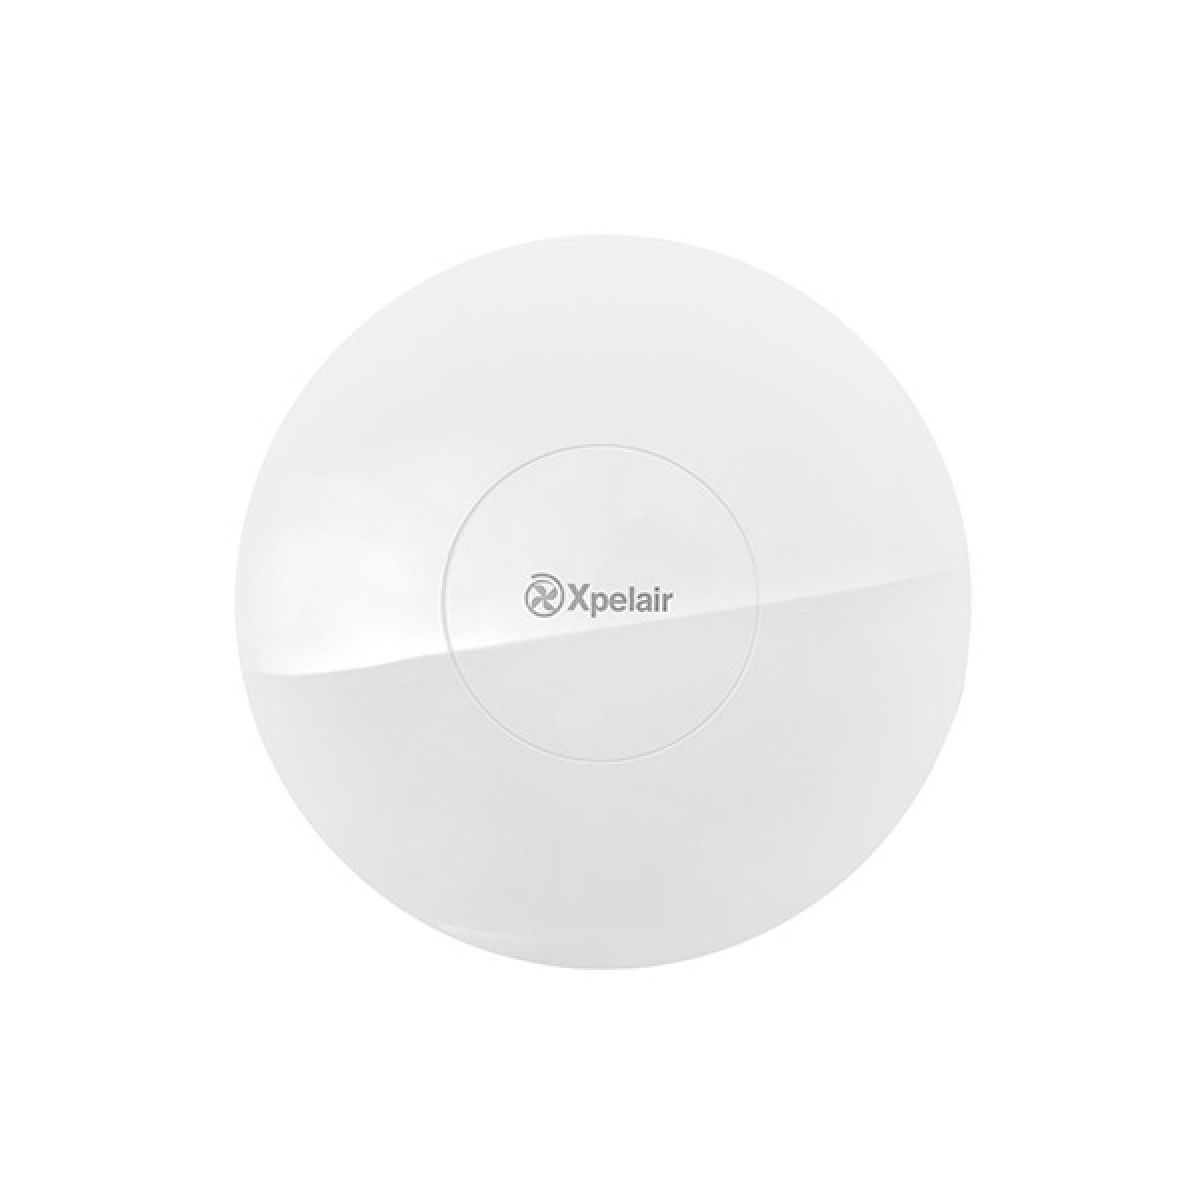 Xpelair Simply Silent Contour Round Bathroom Fan 100mm - Front